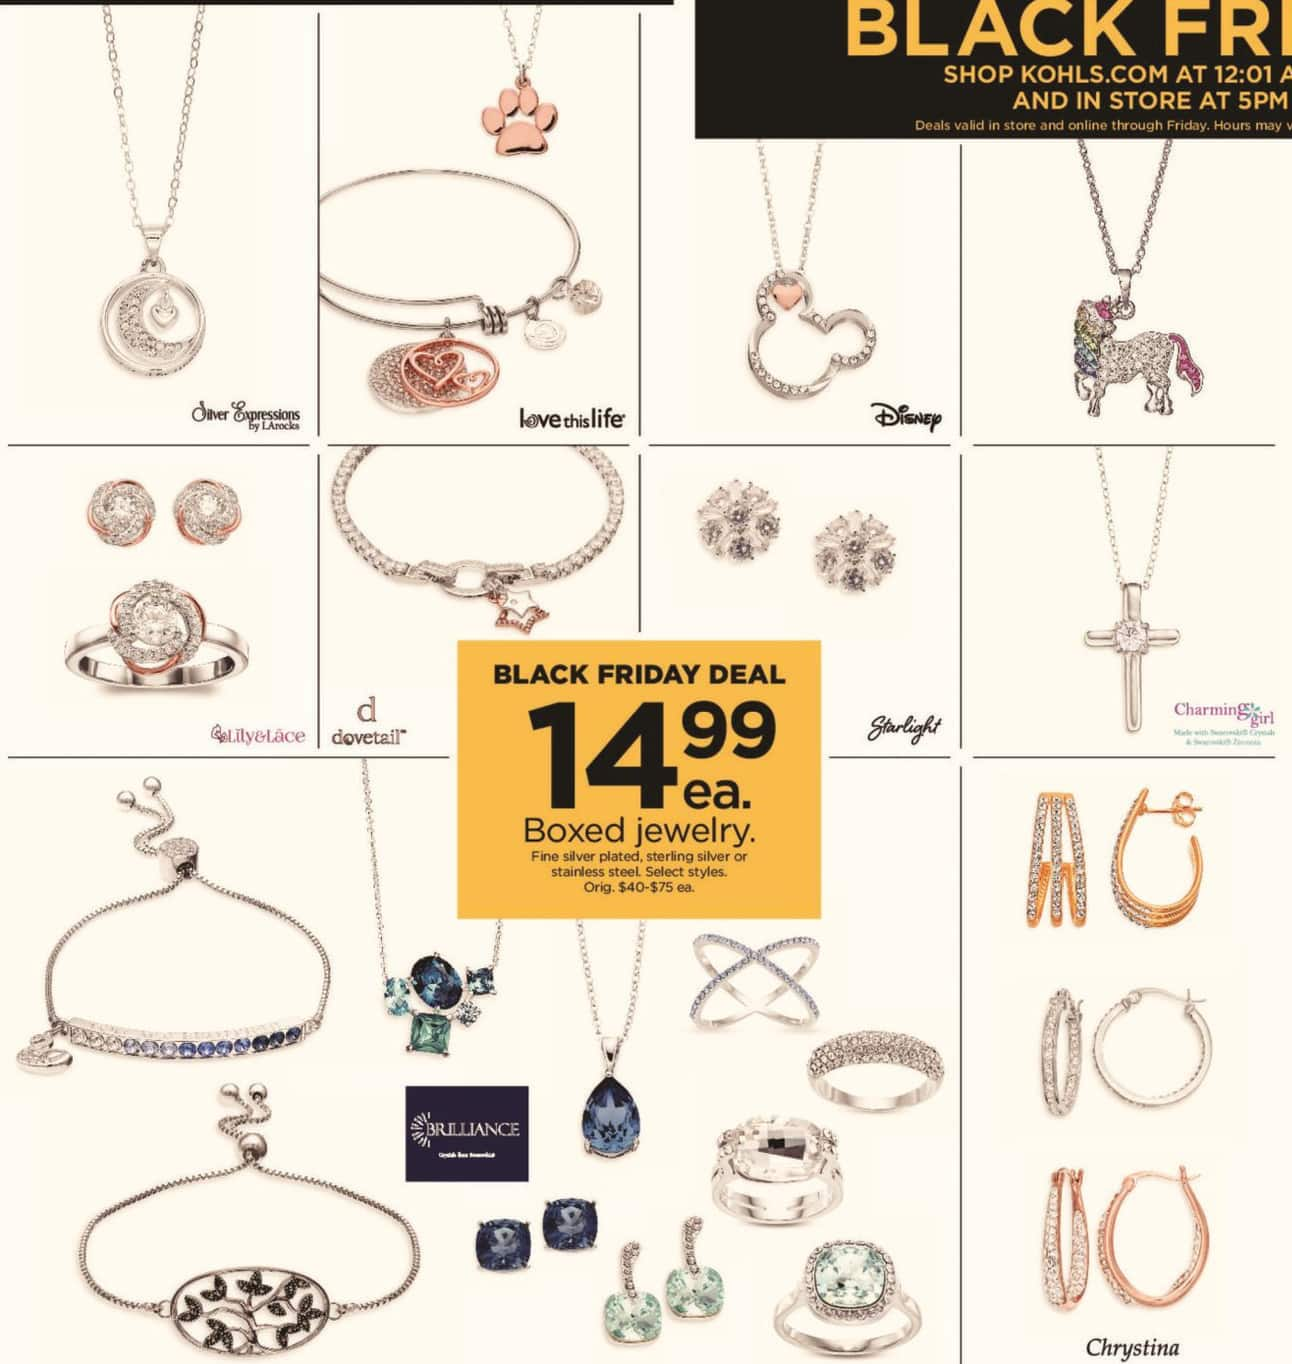 Kohl's Black Friday: Boxed Jewelry in Select Styles for $14.99